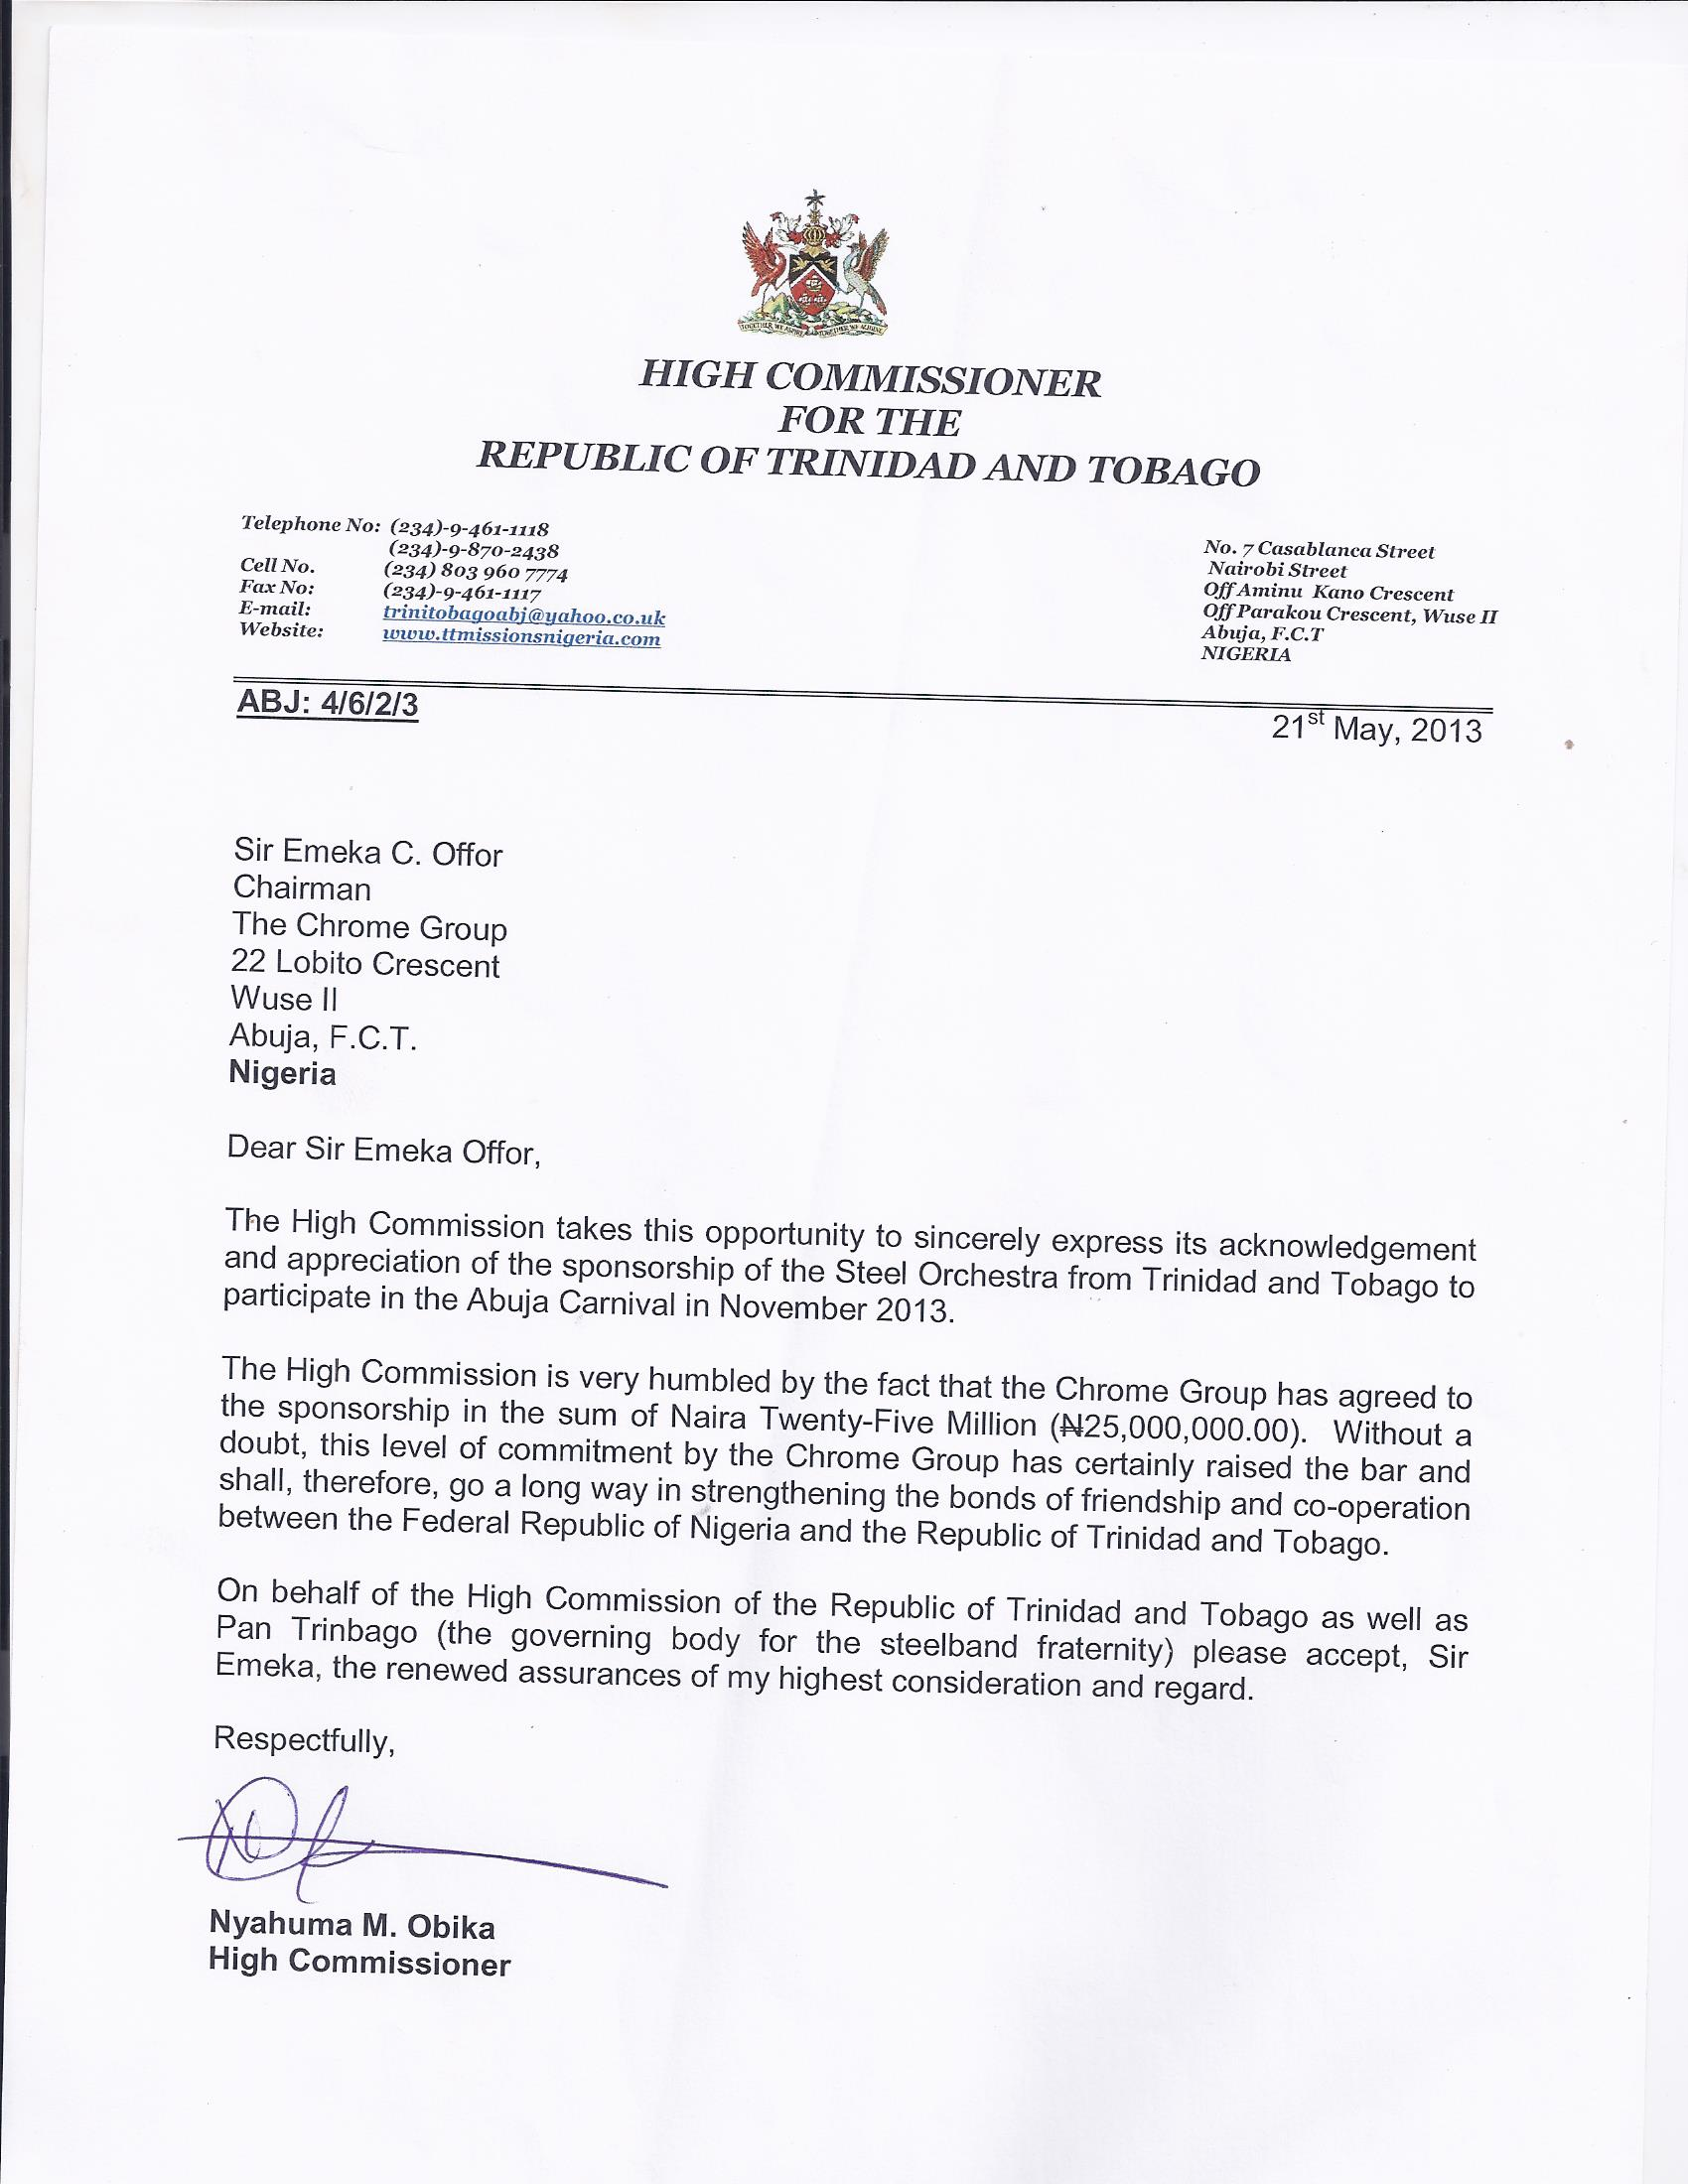 Letter from High Commissioner for the Republic of Trinidad and Tobago